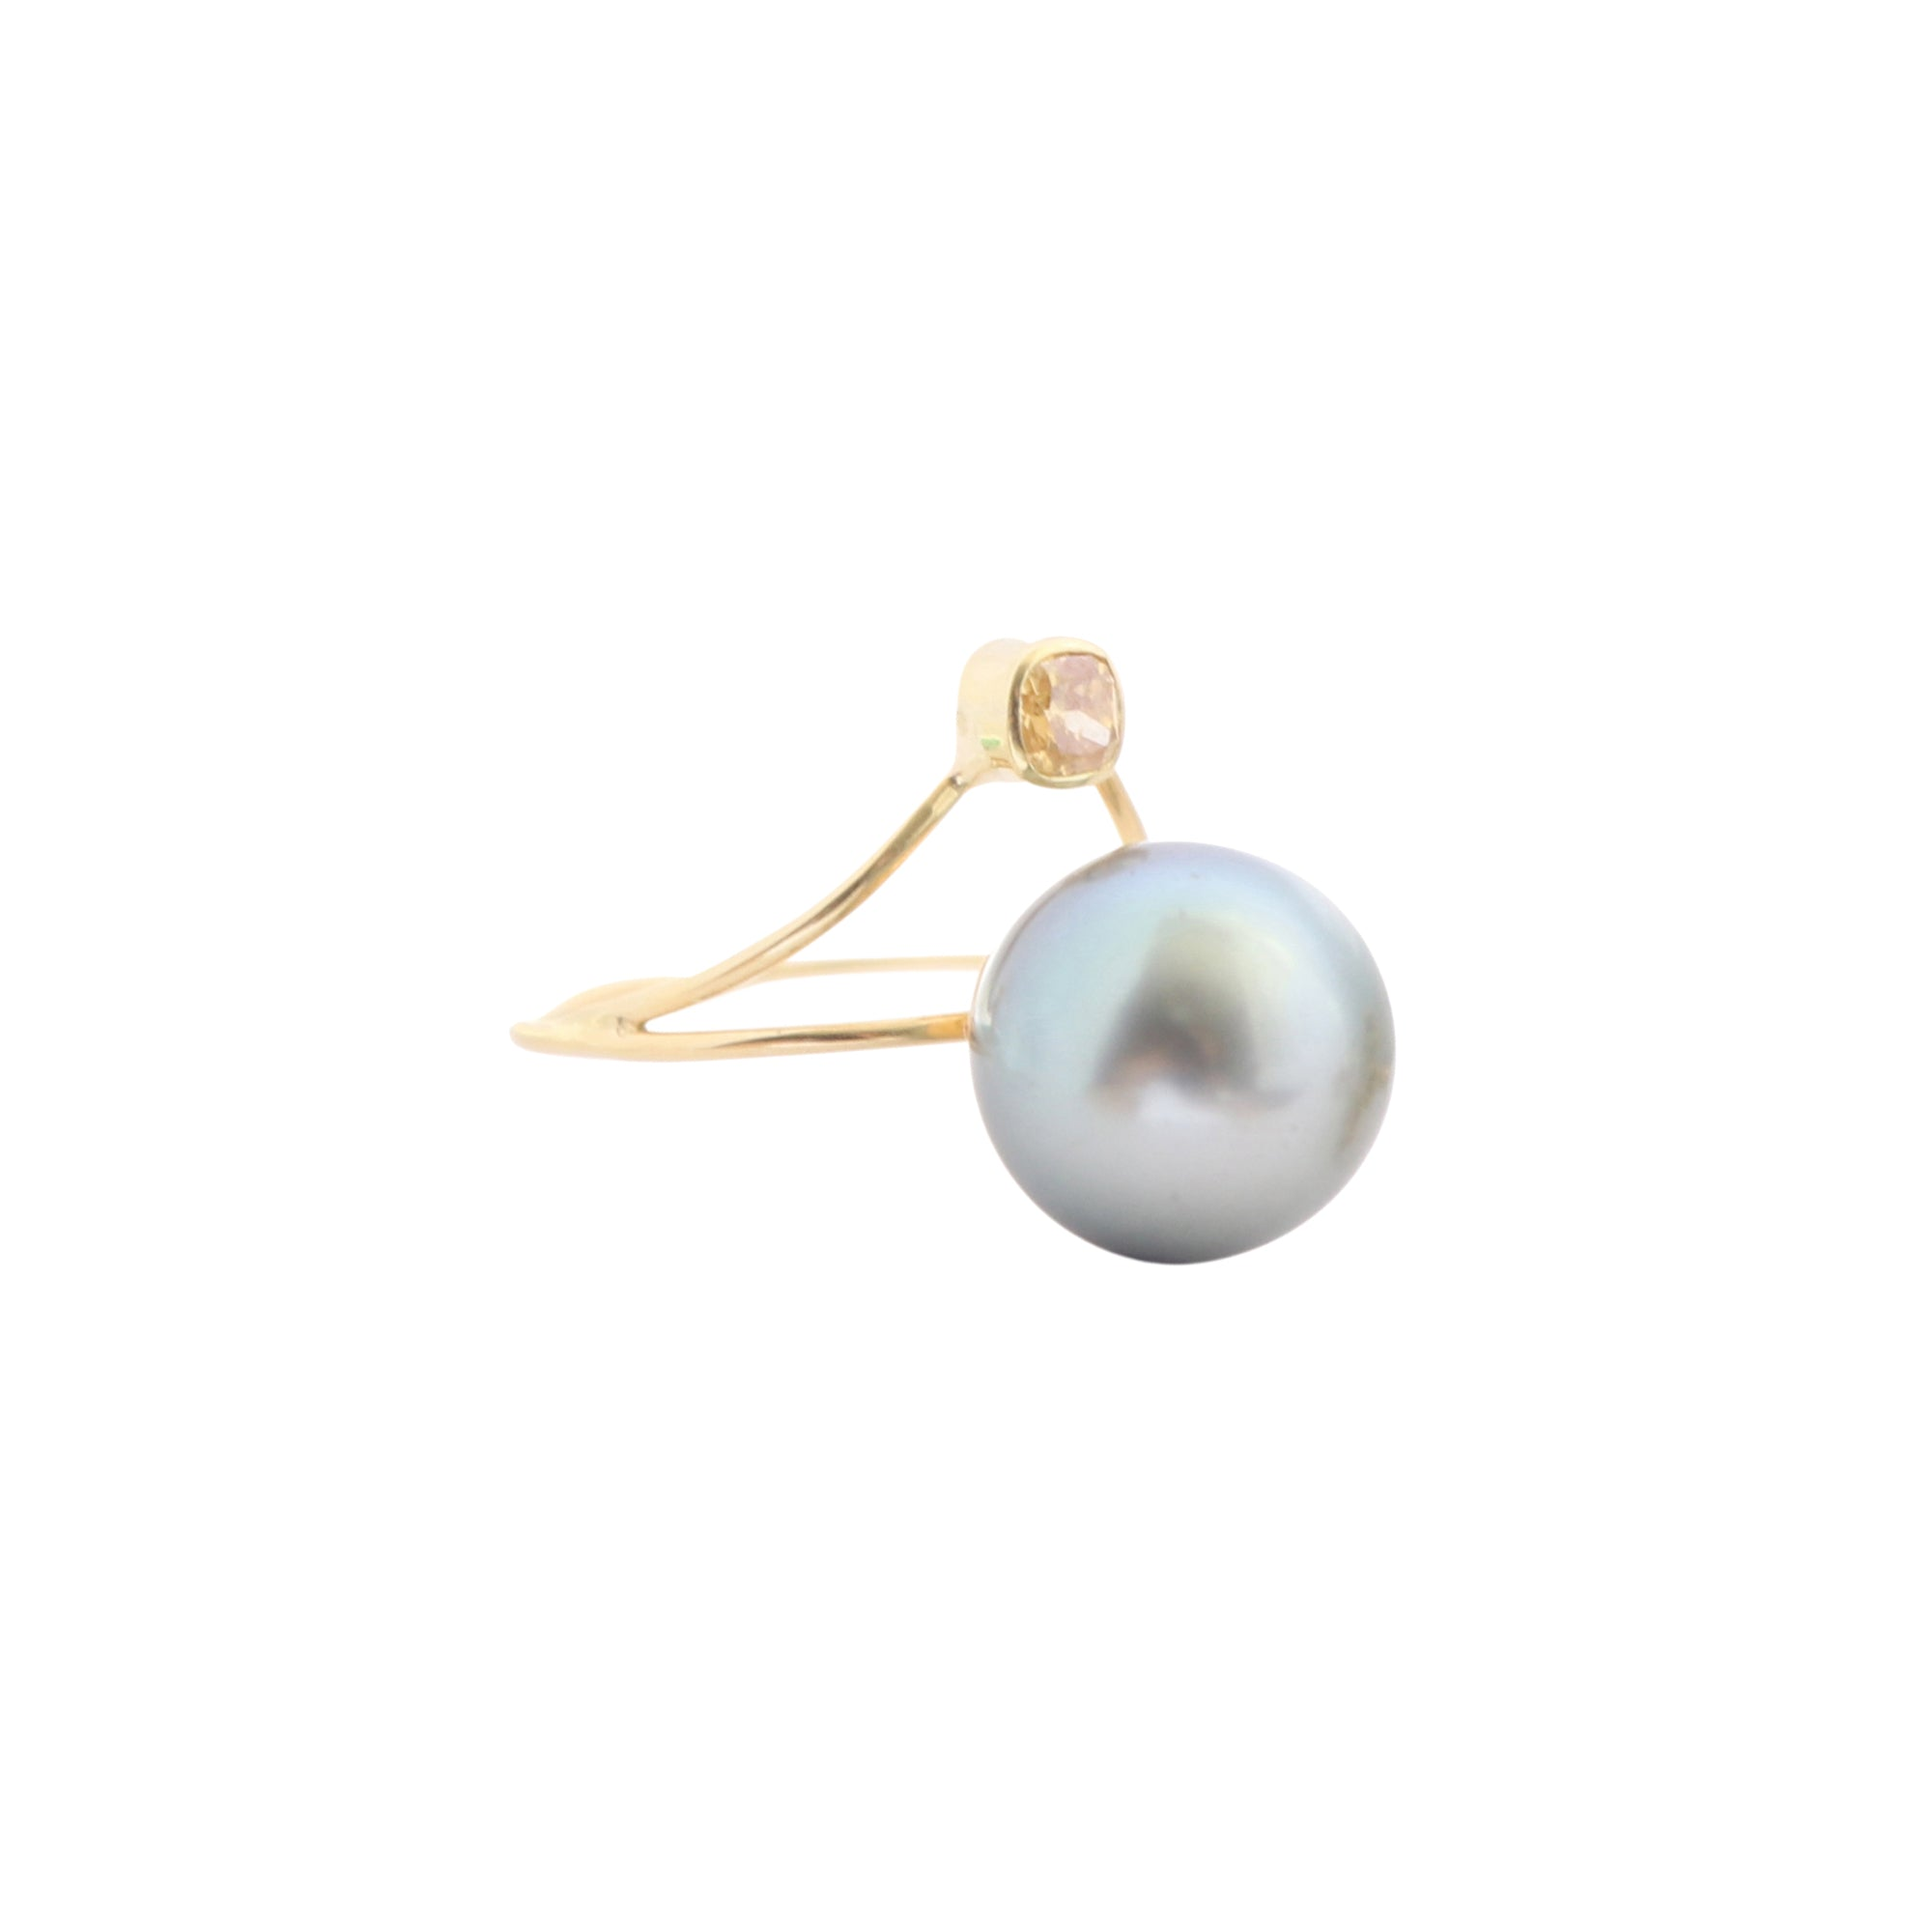 Gold Diamond Pearl Galaxy Ring by Xiao Wang for Broken English Jewelry